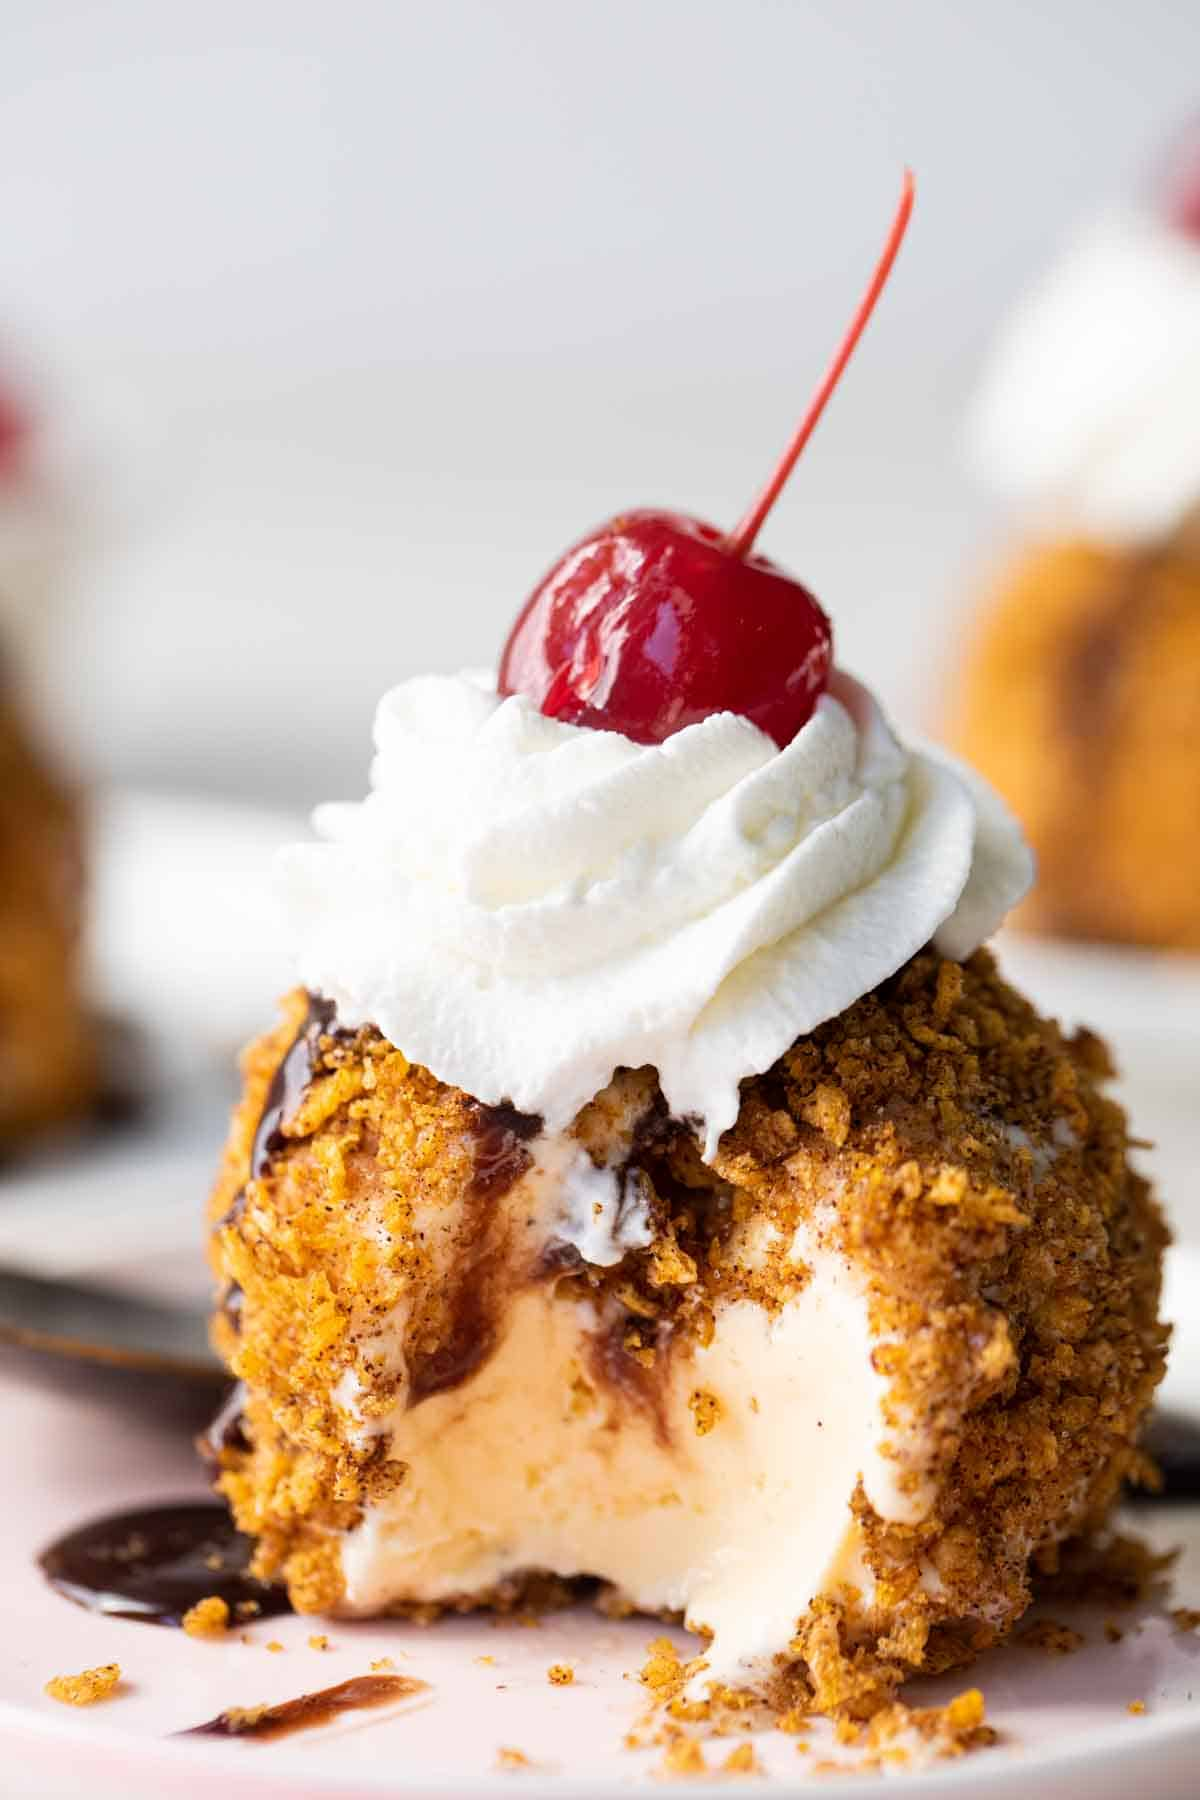 Mexican Fried Ice Cream topped with whipped cream and a cherry with a bite taken out on a plate.